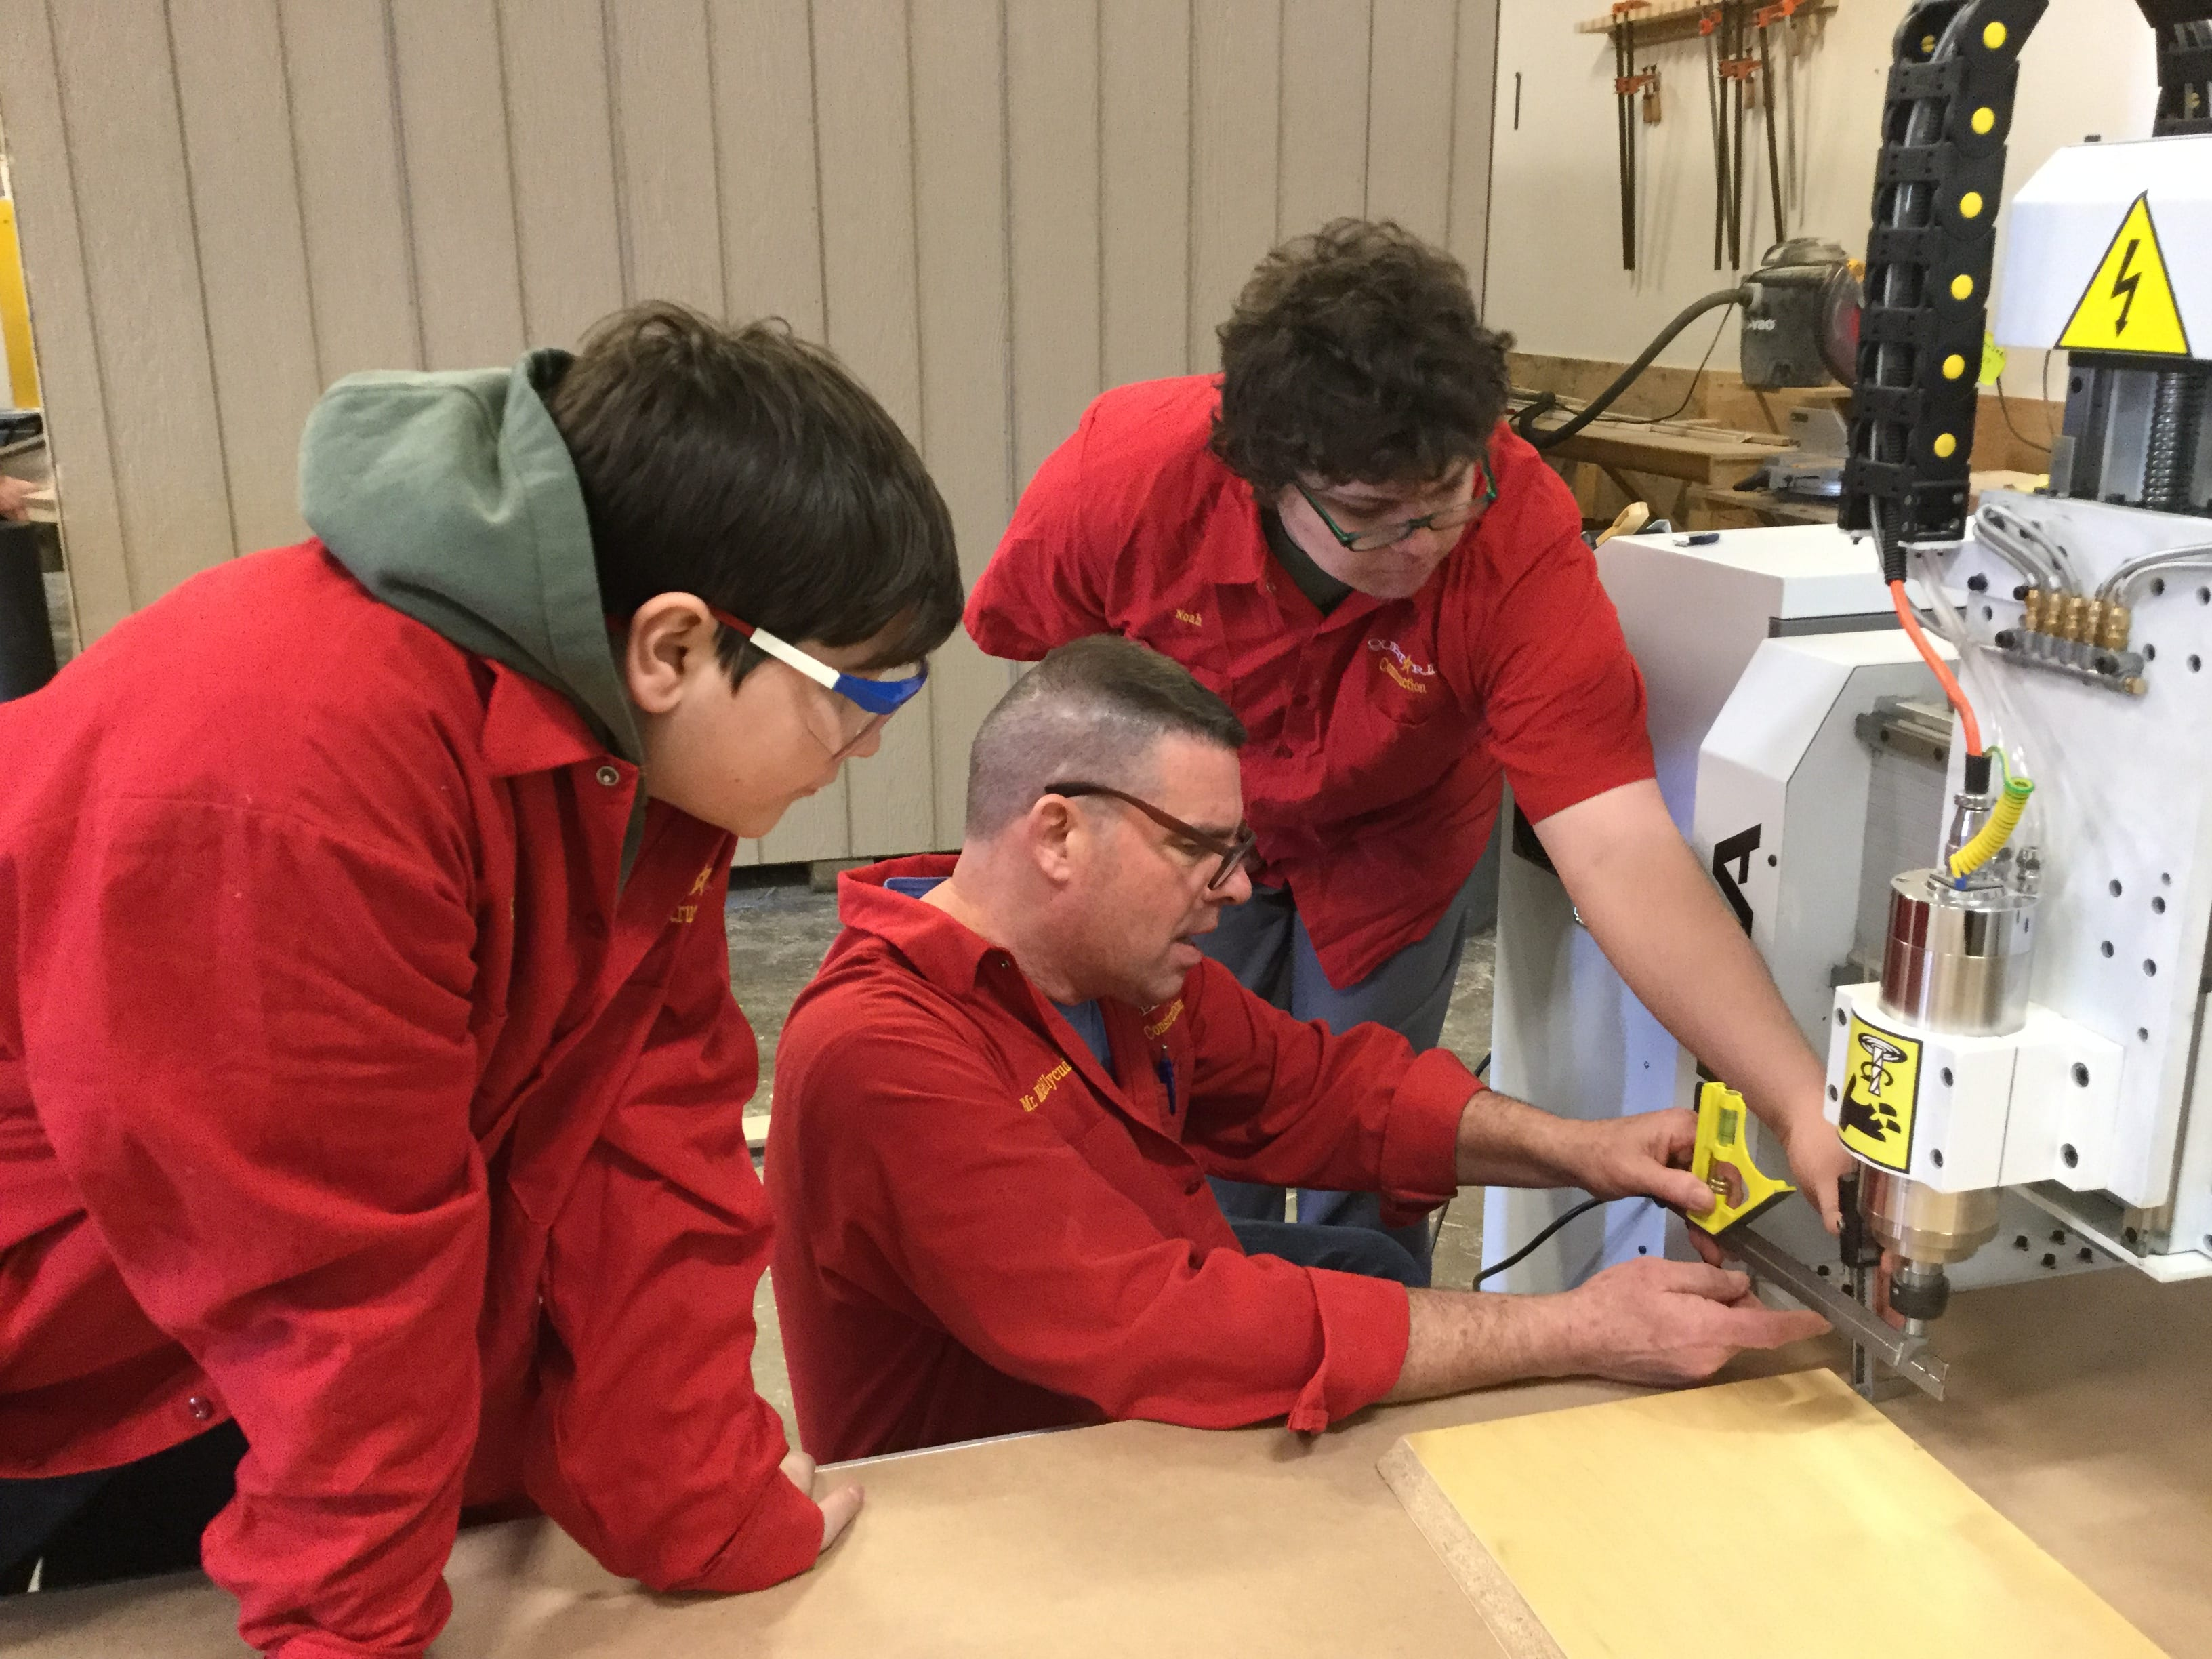 Image of three people in red workshirts working together on a CNC machine